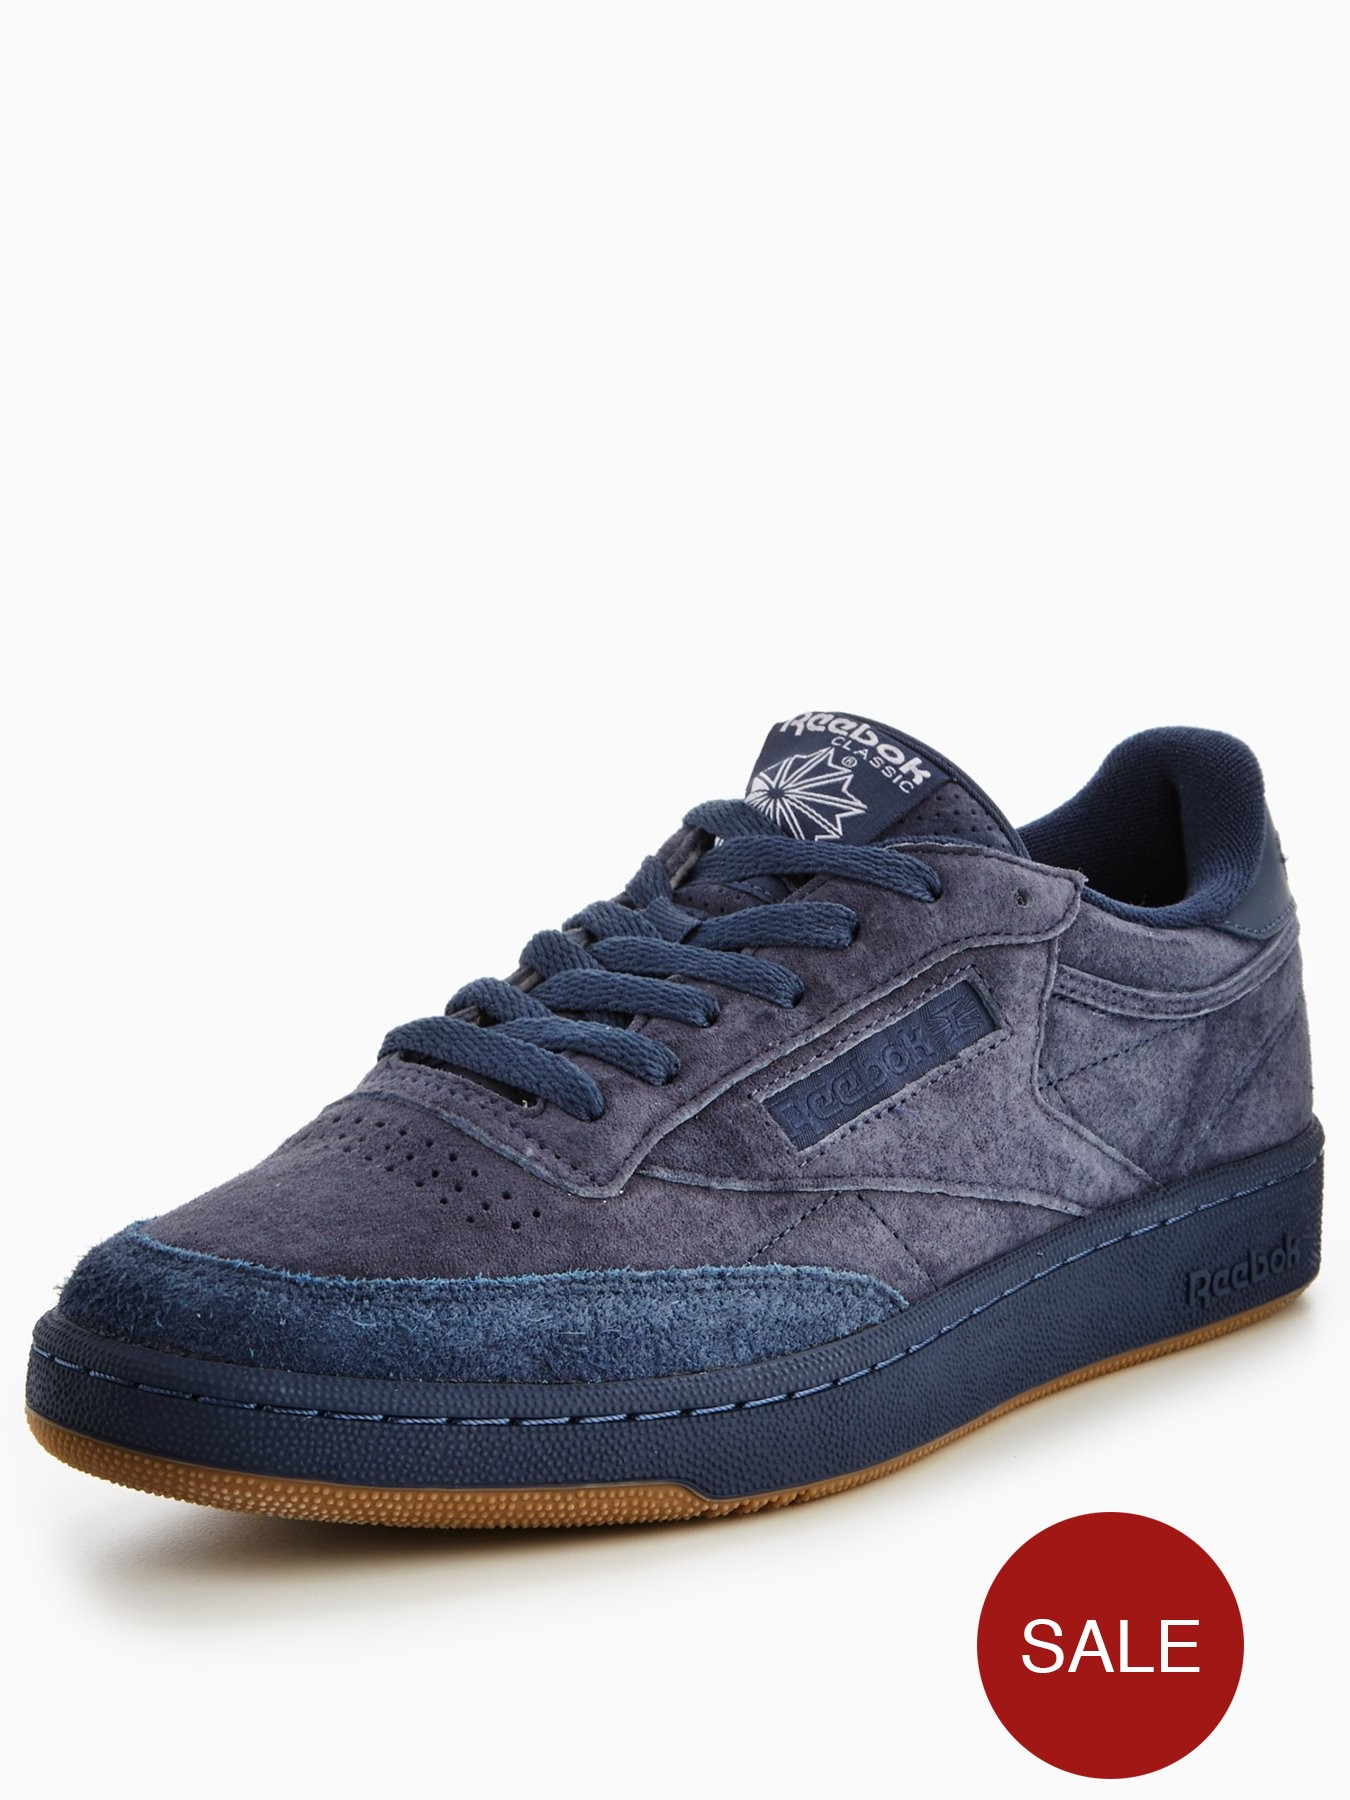 Reebok Club C 85 SG 1600161418 Men's Shoes Reebok Trainers